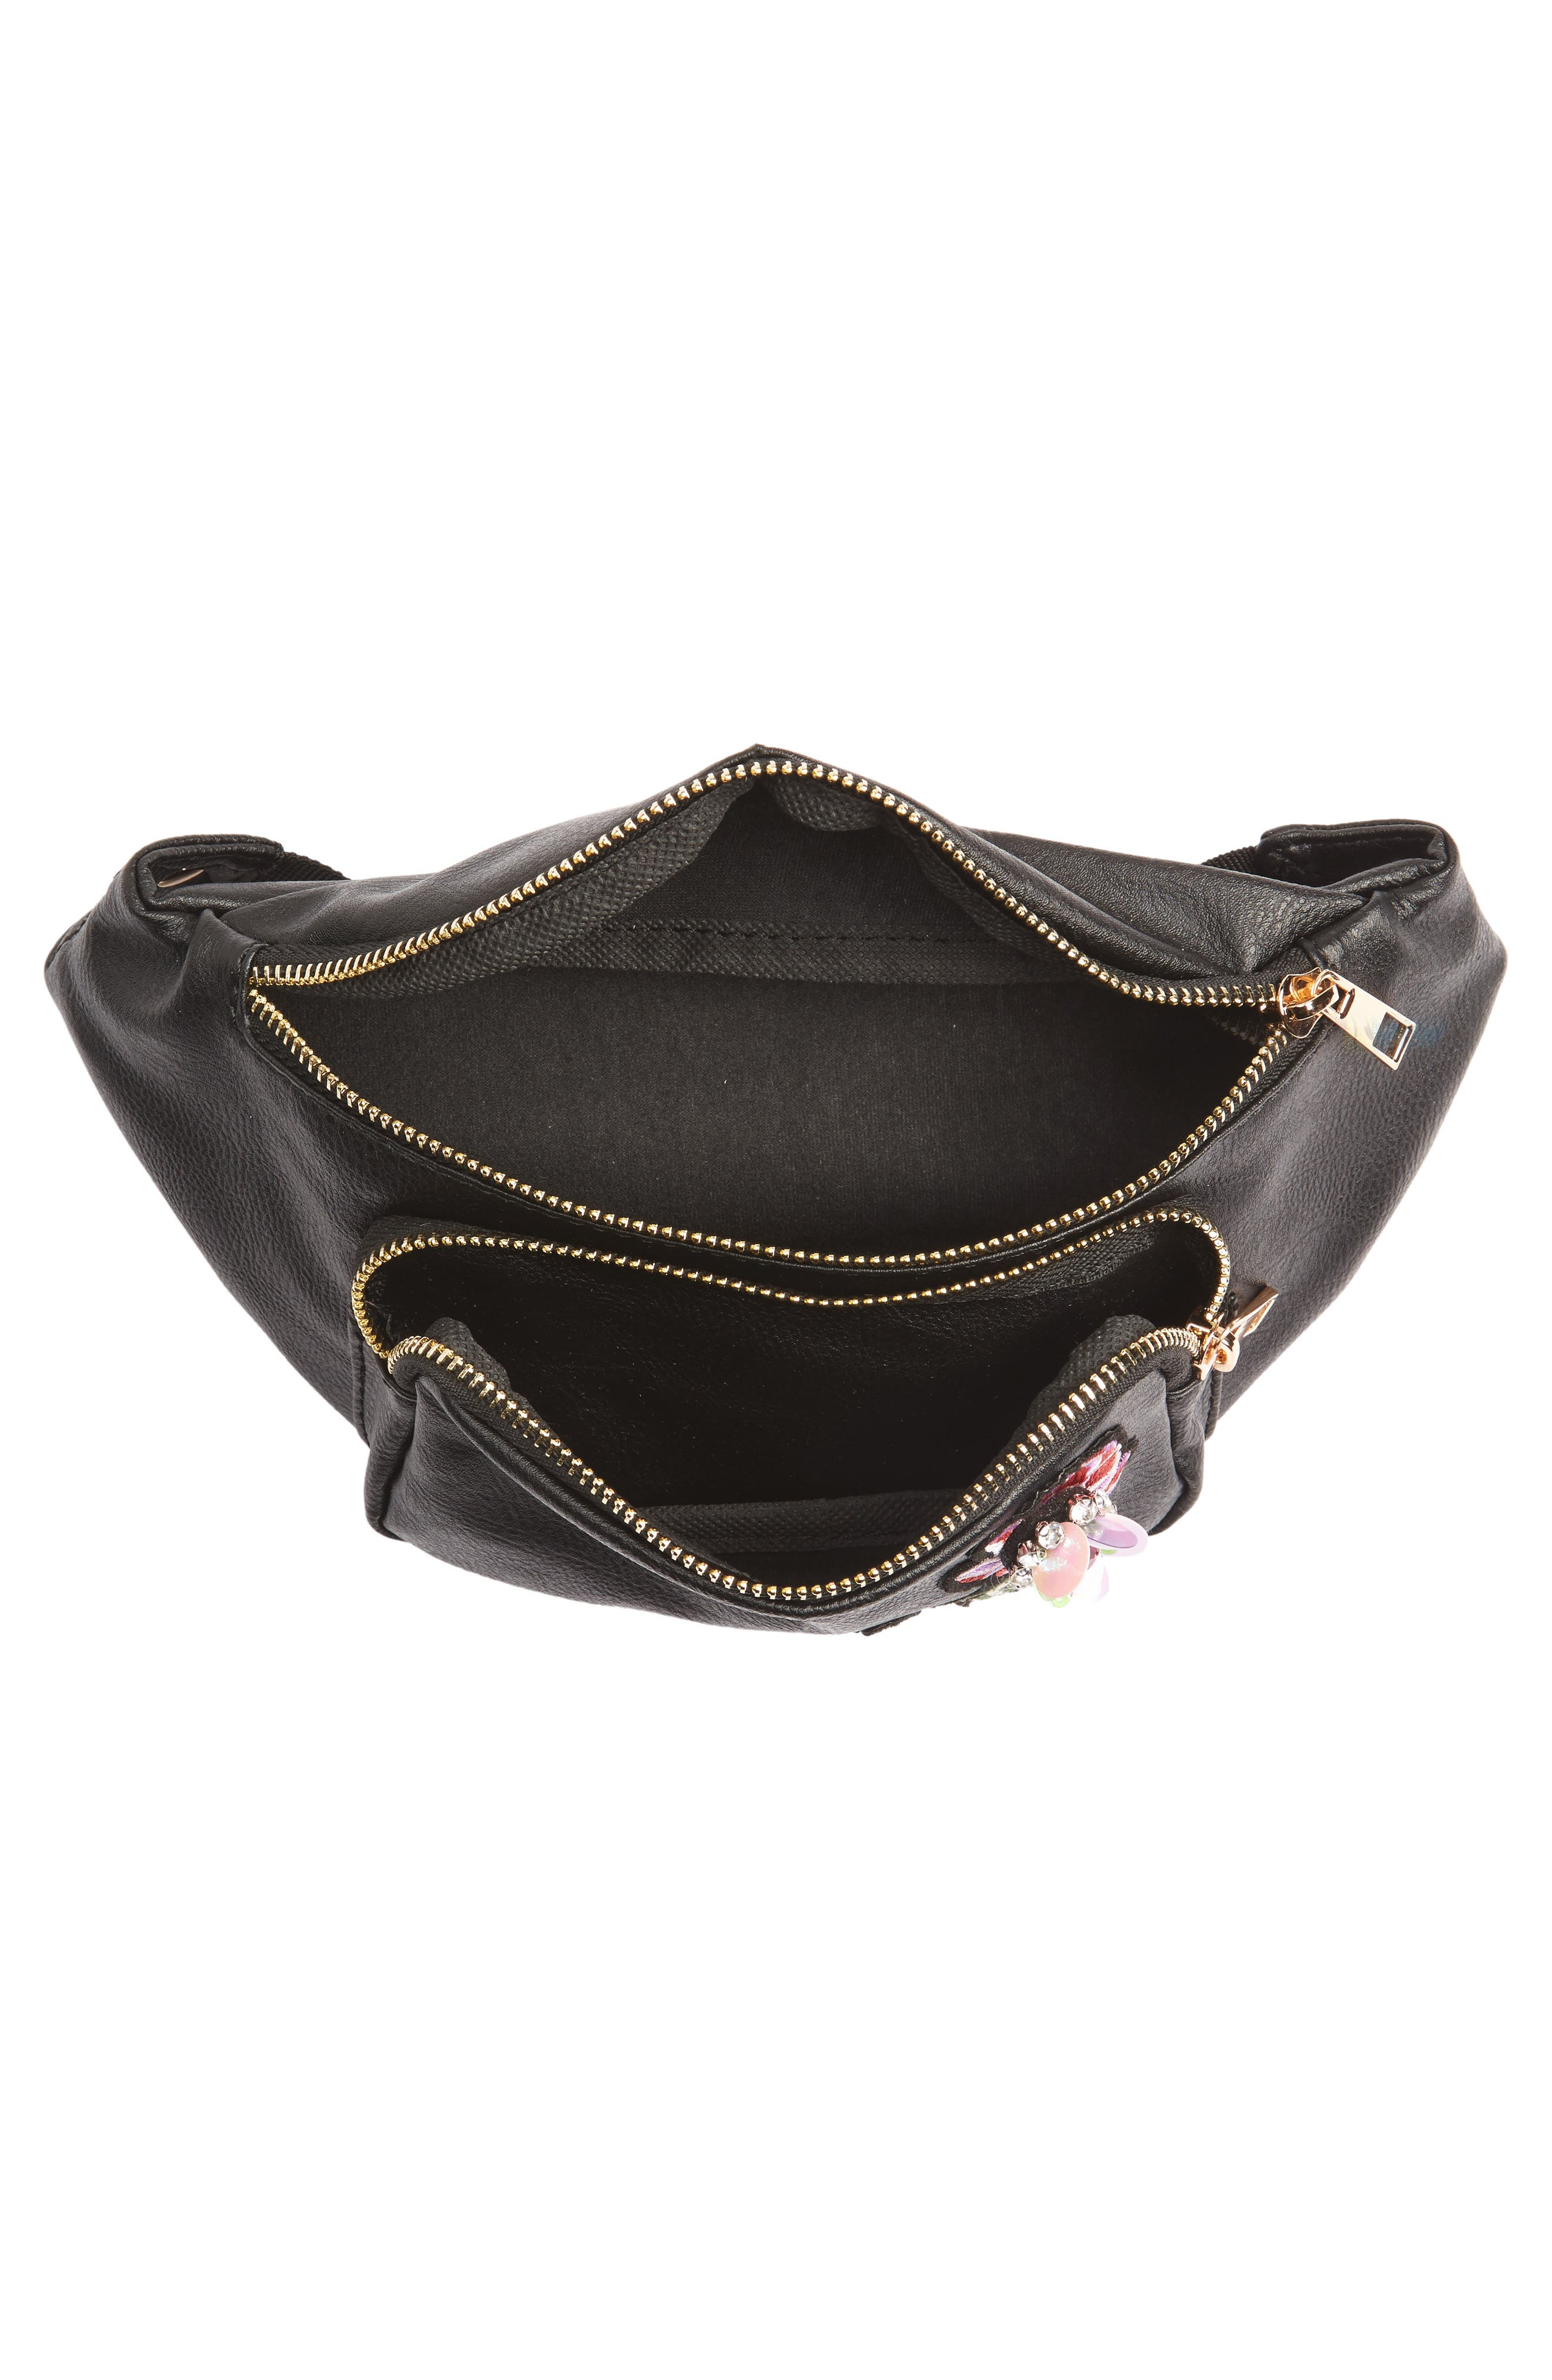 Alternate Image 3  - OMG Embroidered Faux Leather Fanny Pack (Girls)